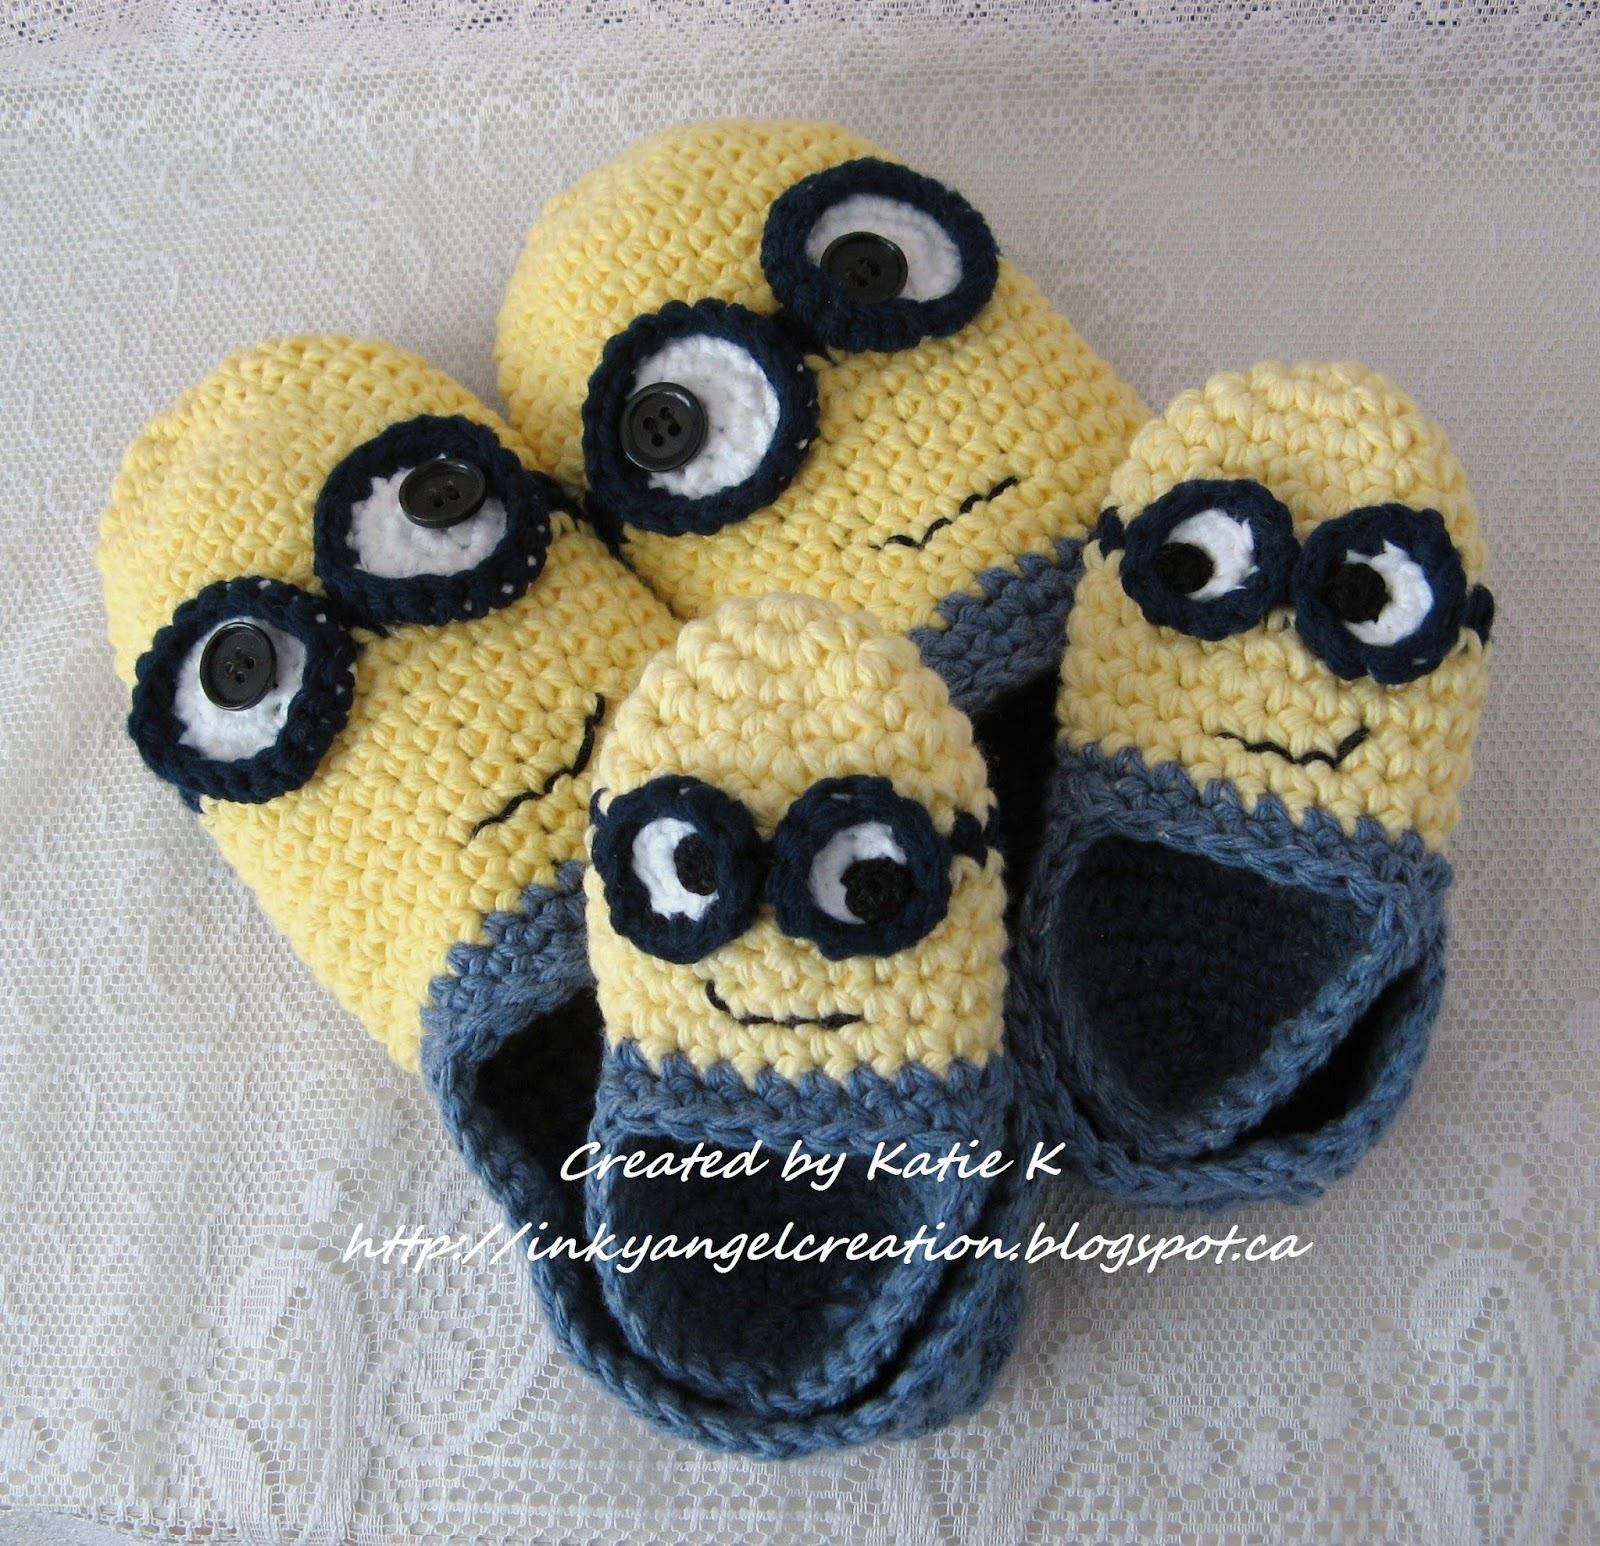 Free Crochet Patterns For Minion Slippers : Inky Angel: Minion Slippers